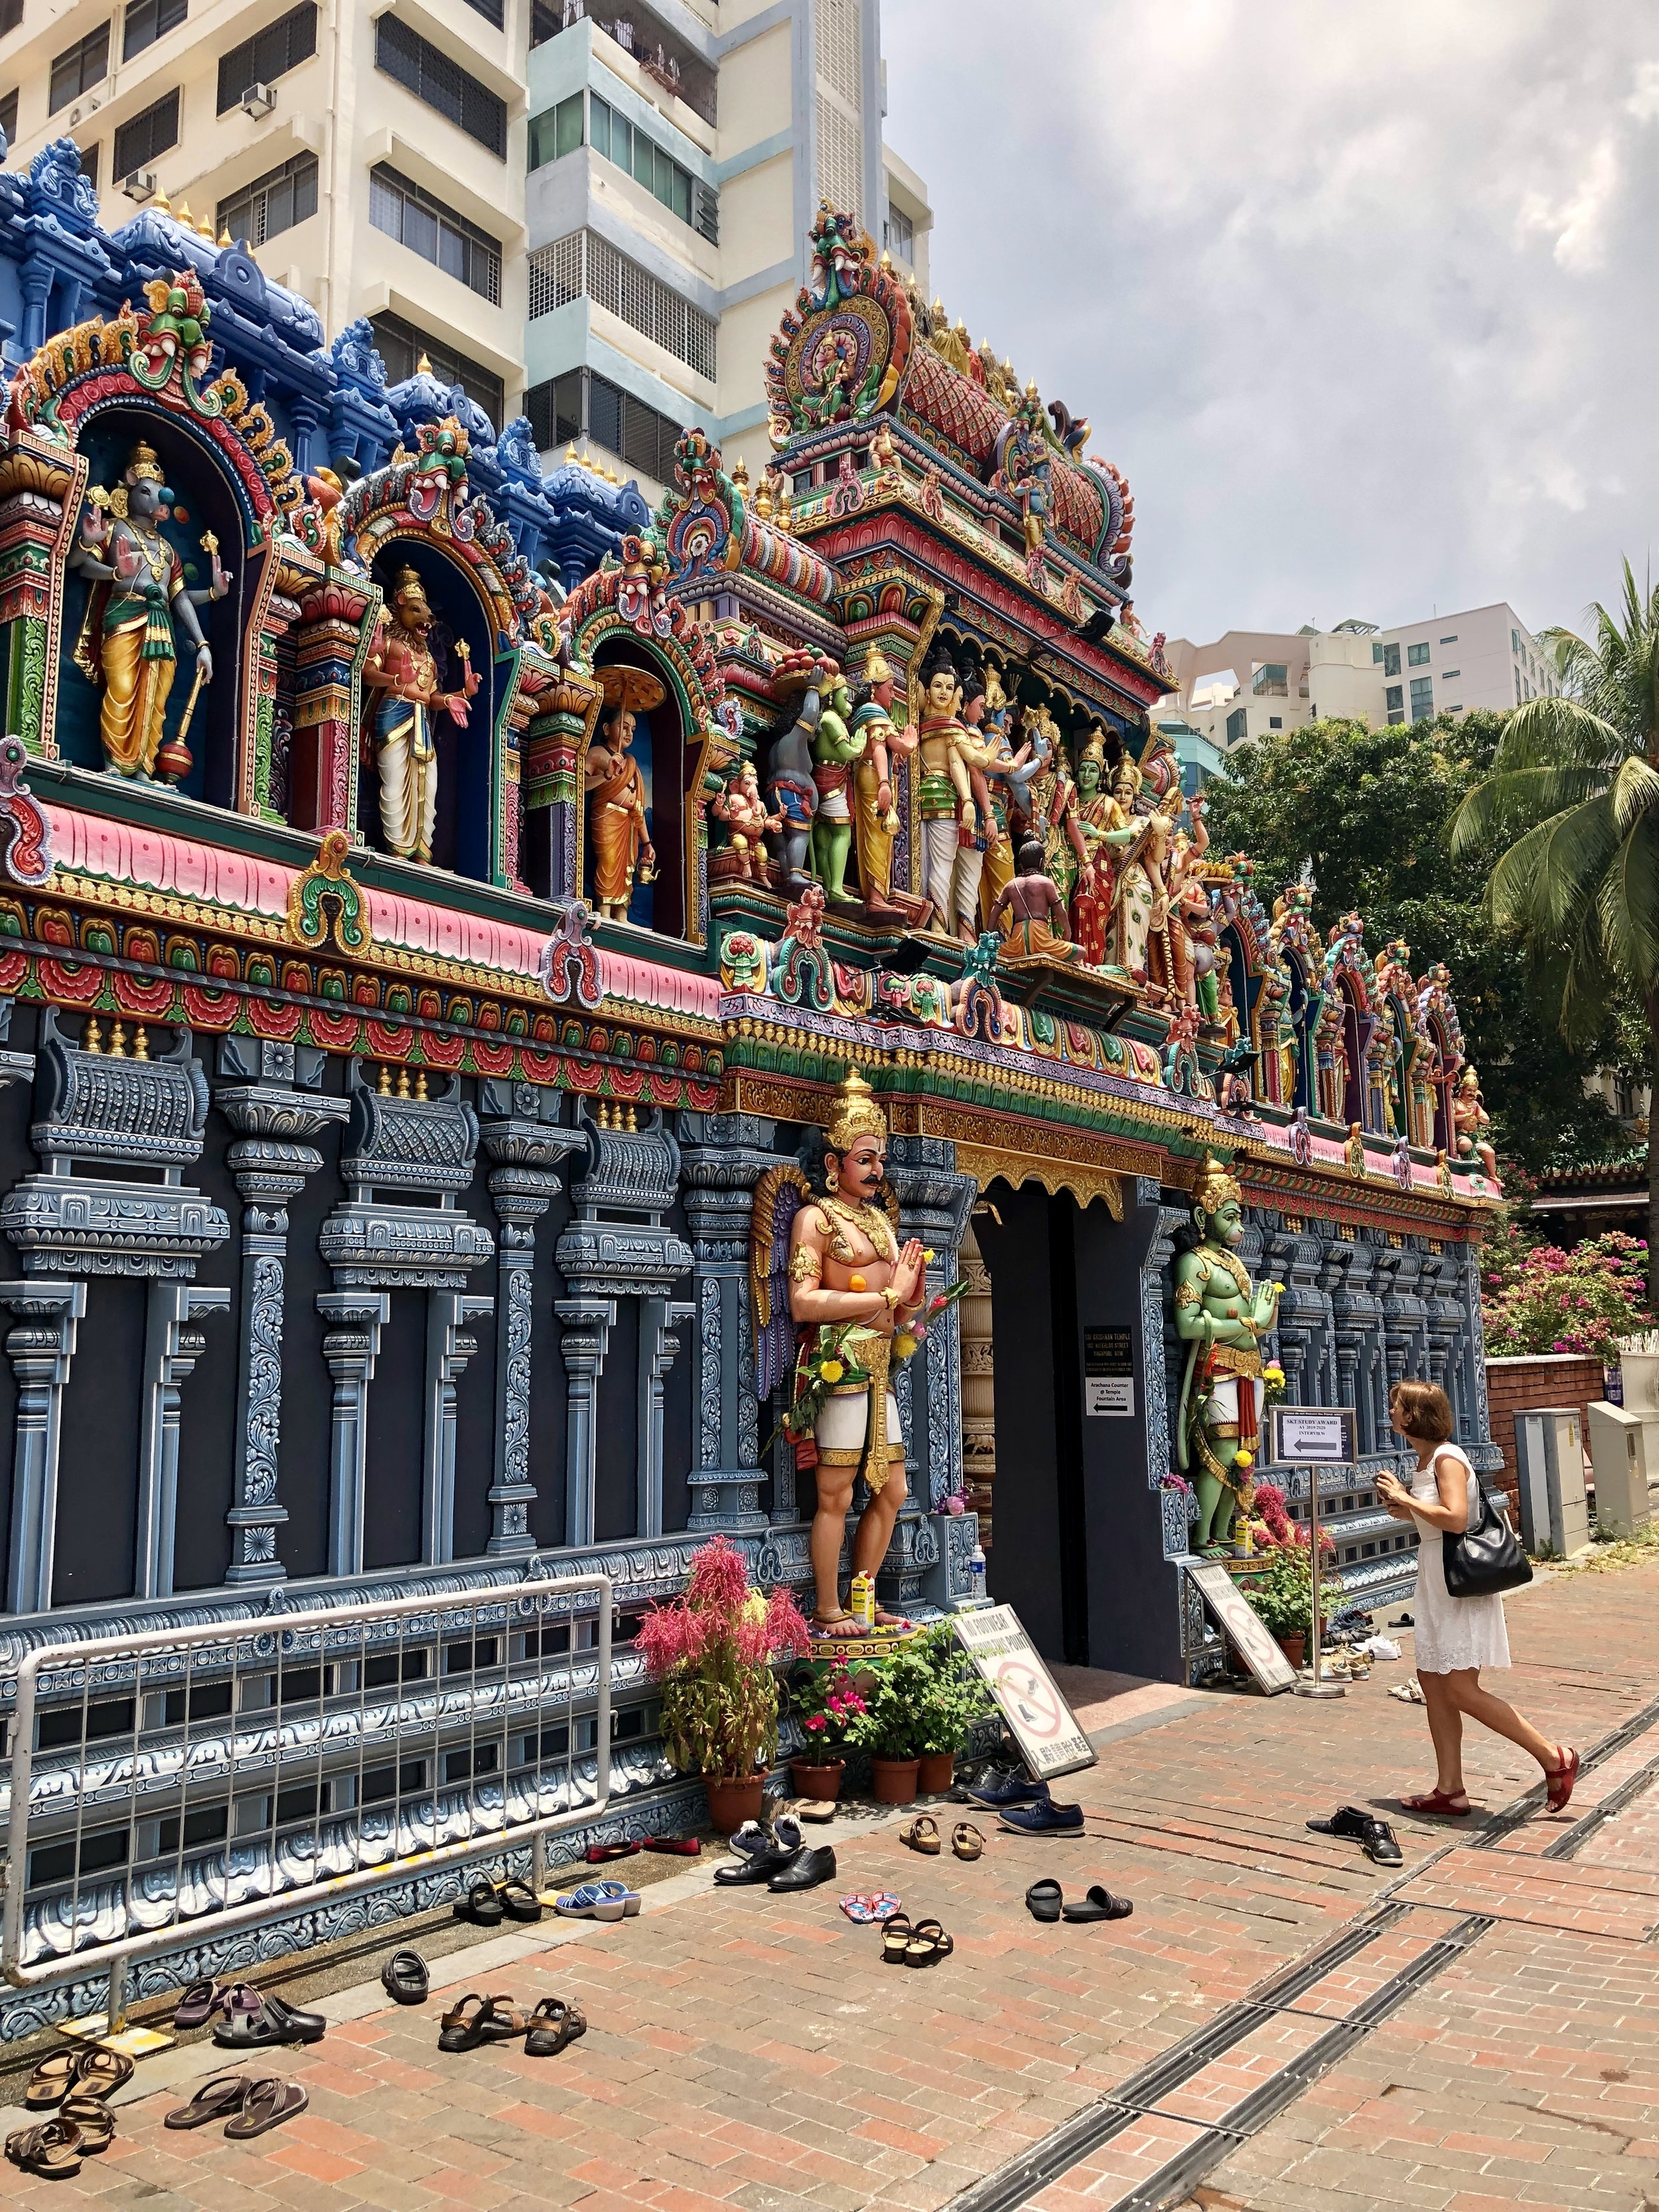 One of the several exquisite Hindu temples in SG